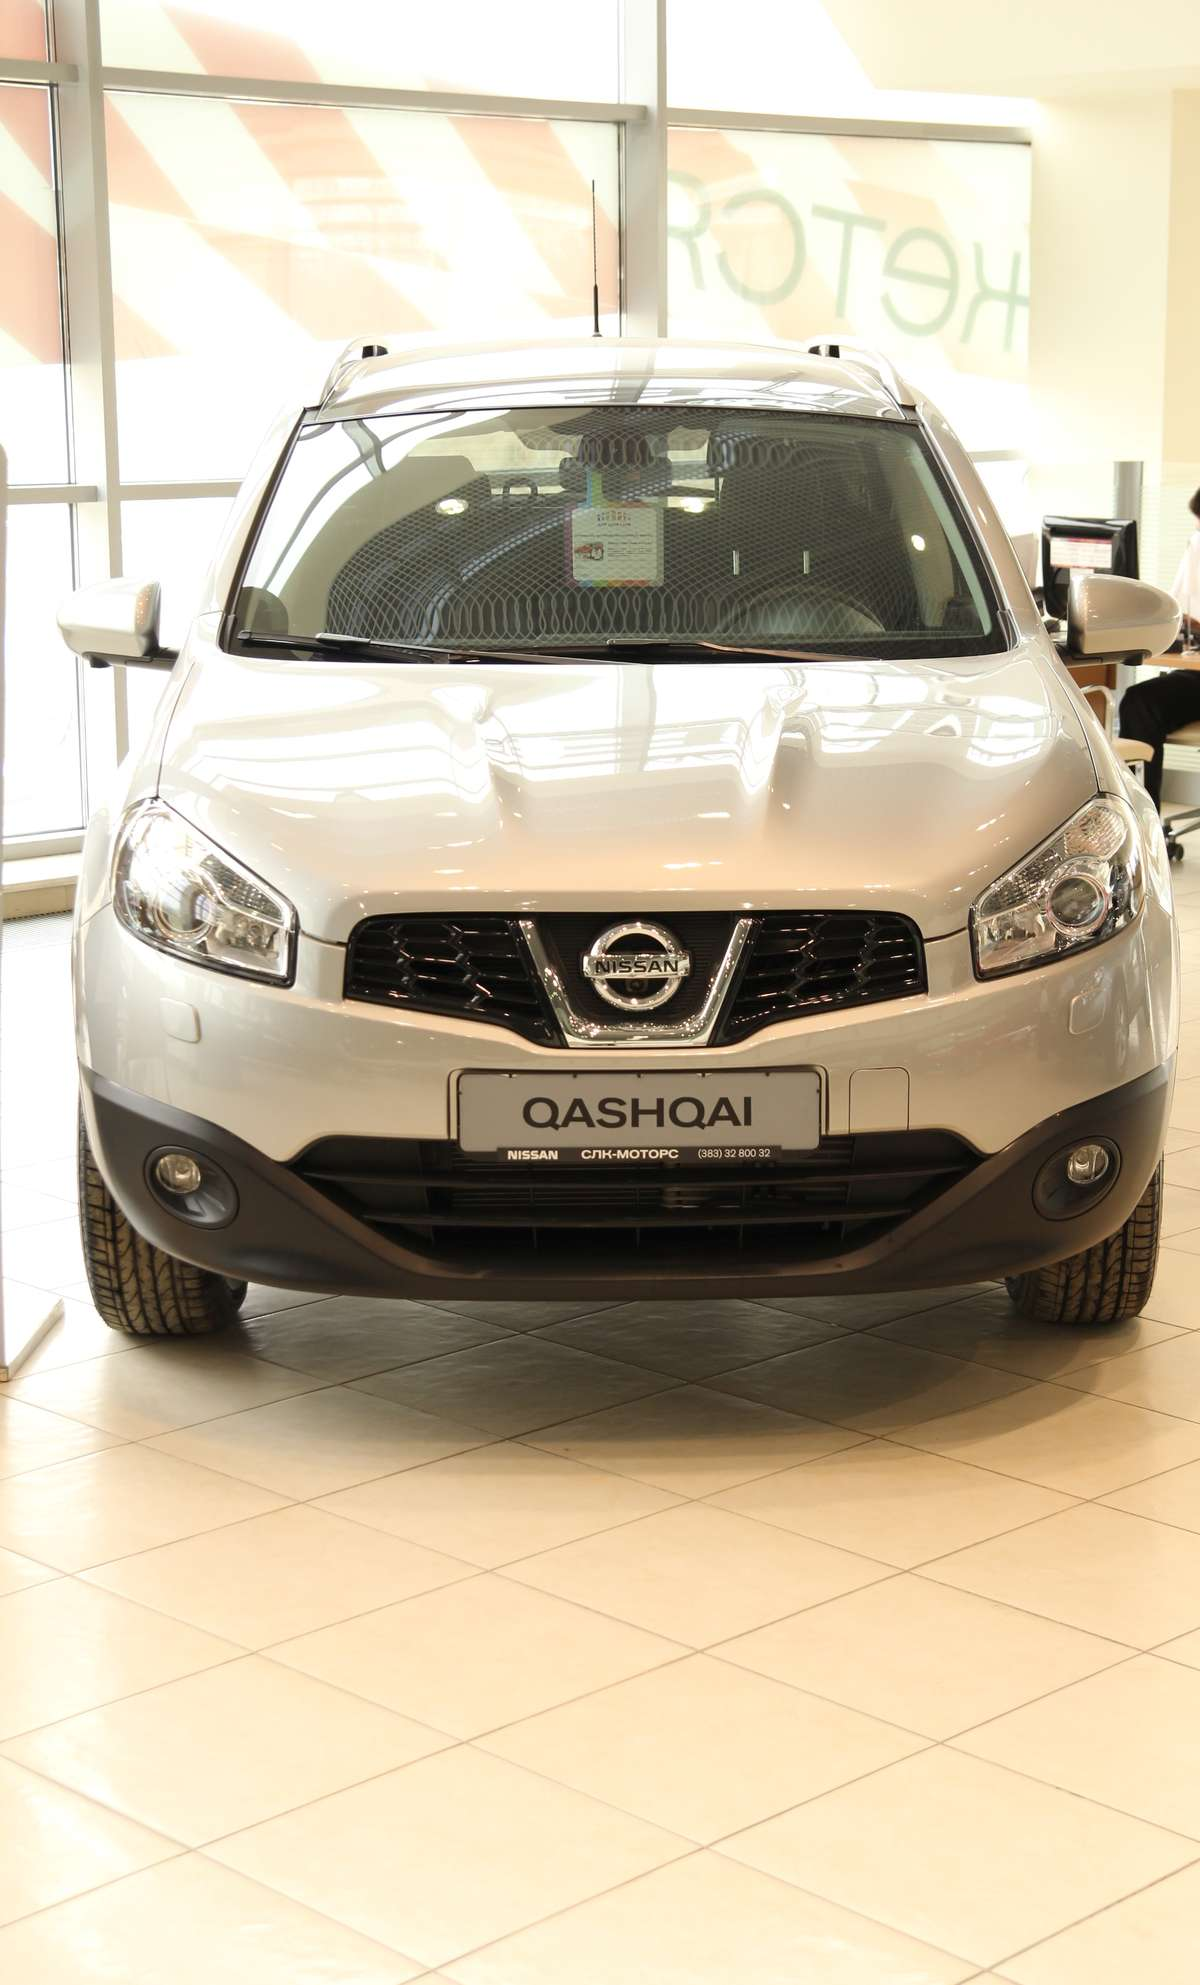 2012 nissan qashqai 2 pictures gasoline cvt for sale. Black Bedroom Furniture Sets. Home Design Ideas